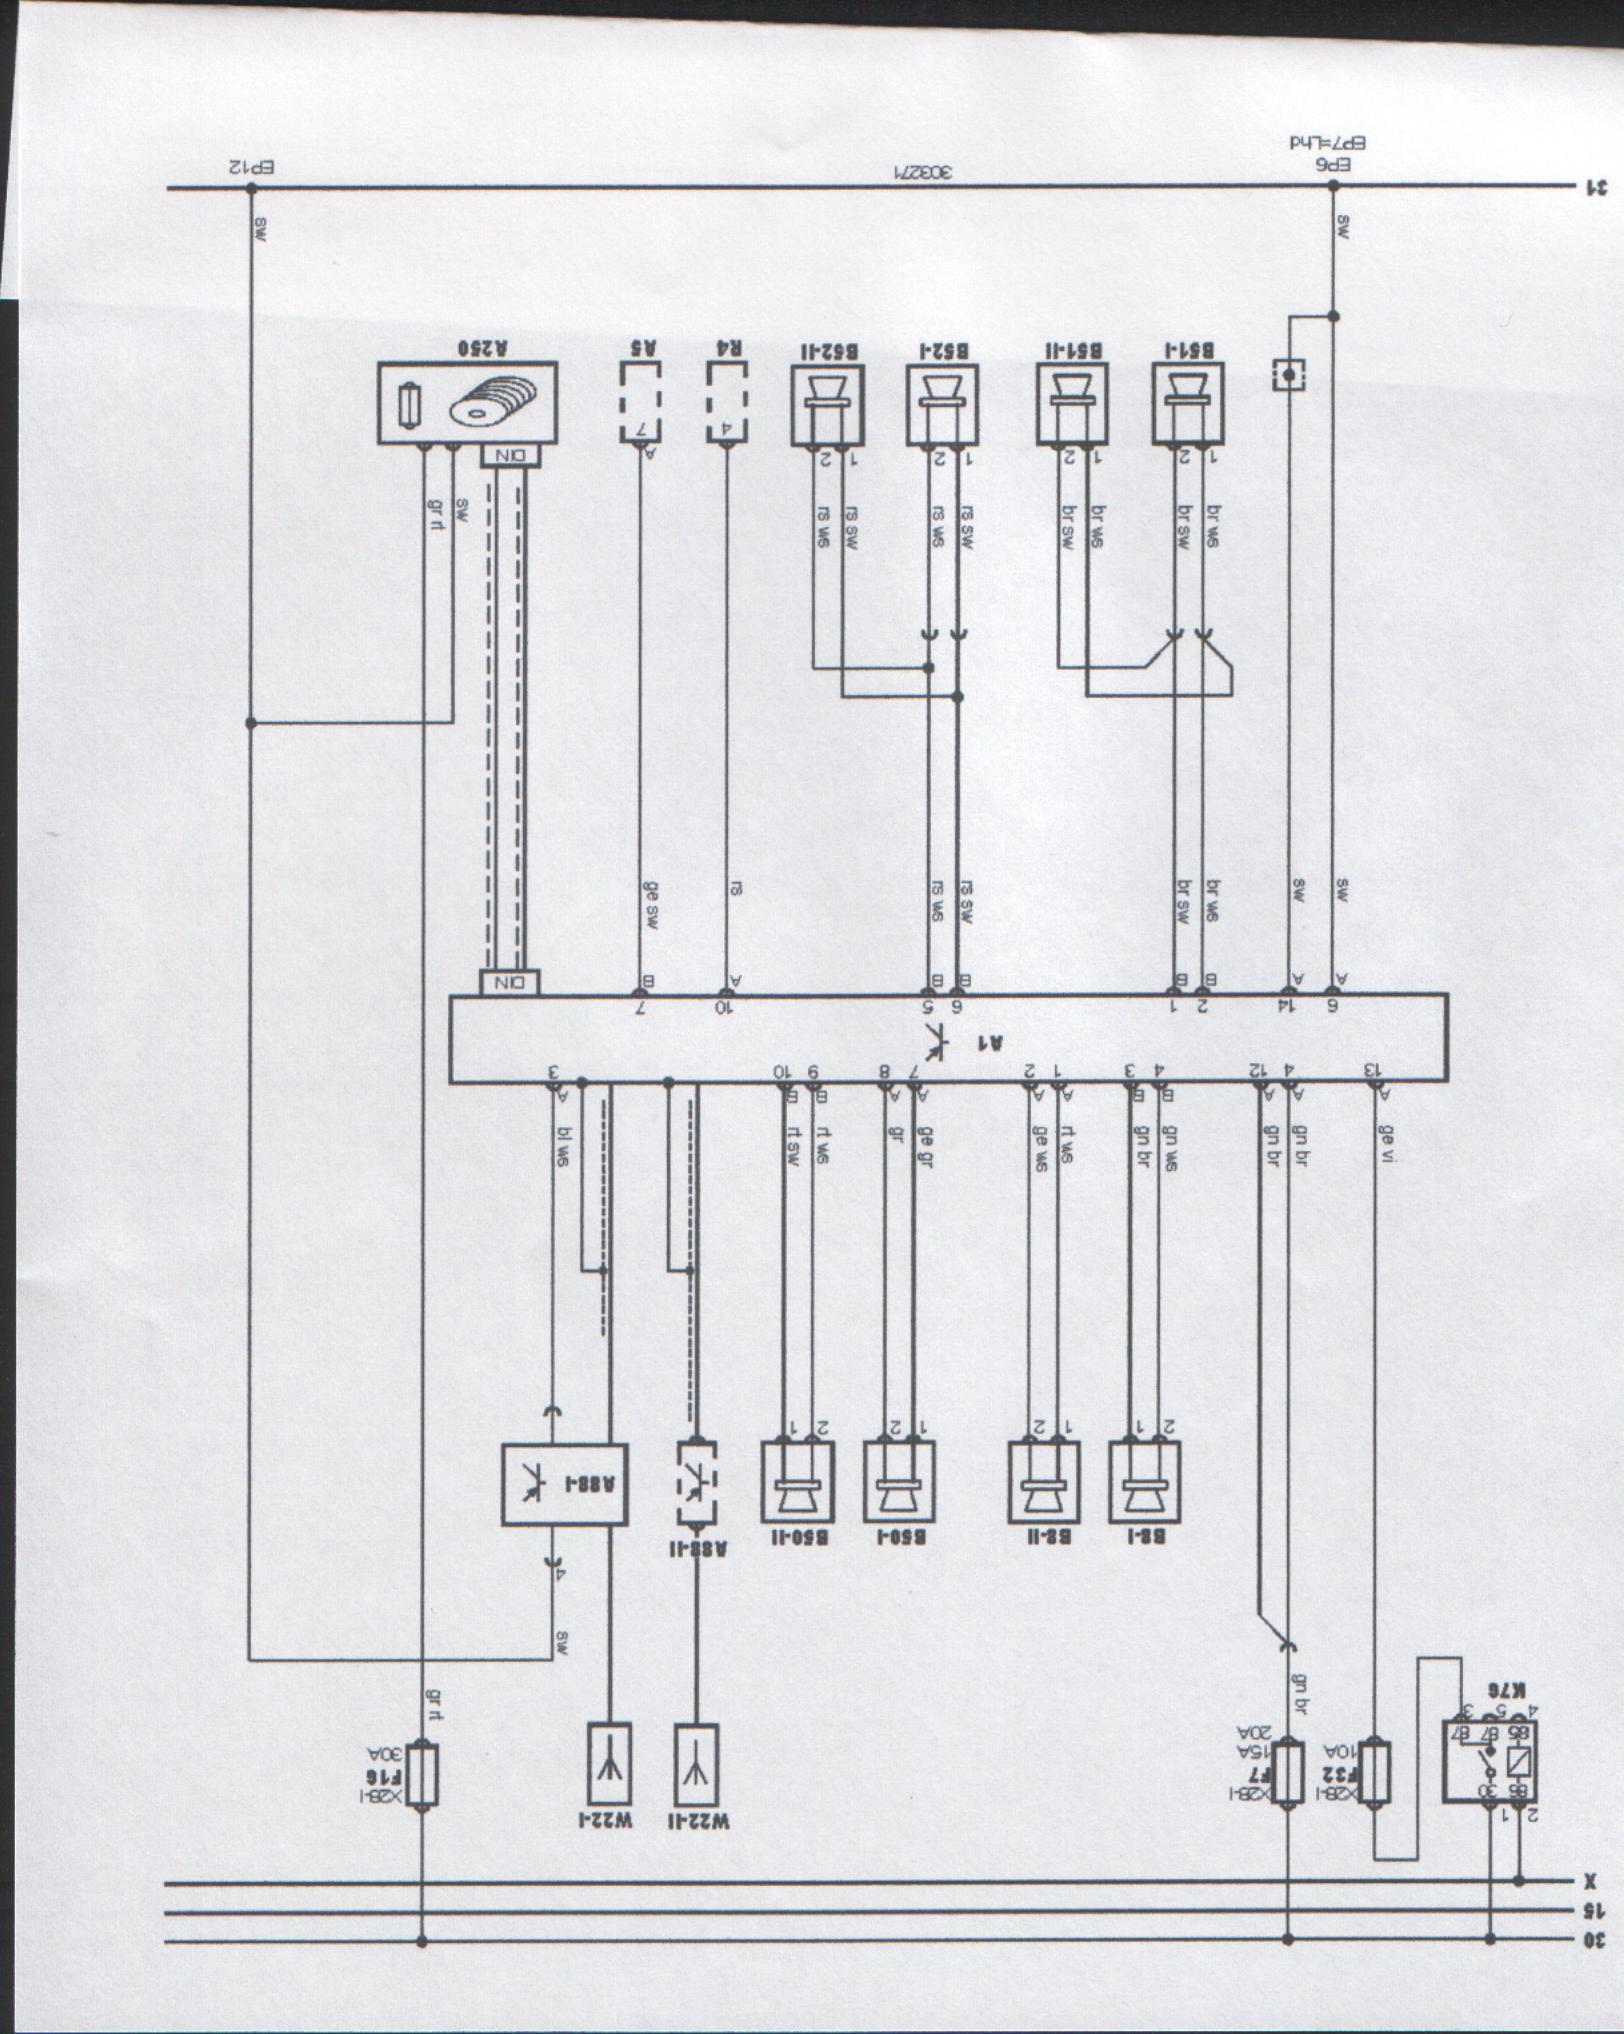 needing a speaker wiring diagram for 1998 volvo s70 4dr ... alarm wiring diagram 1998 ford explorer 1998